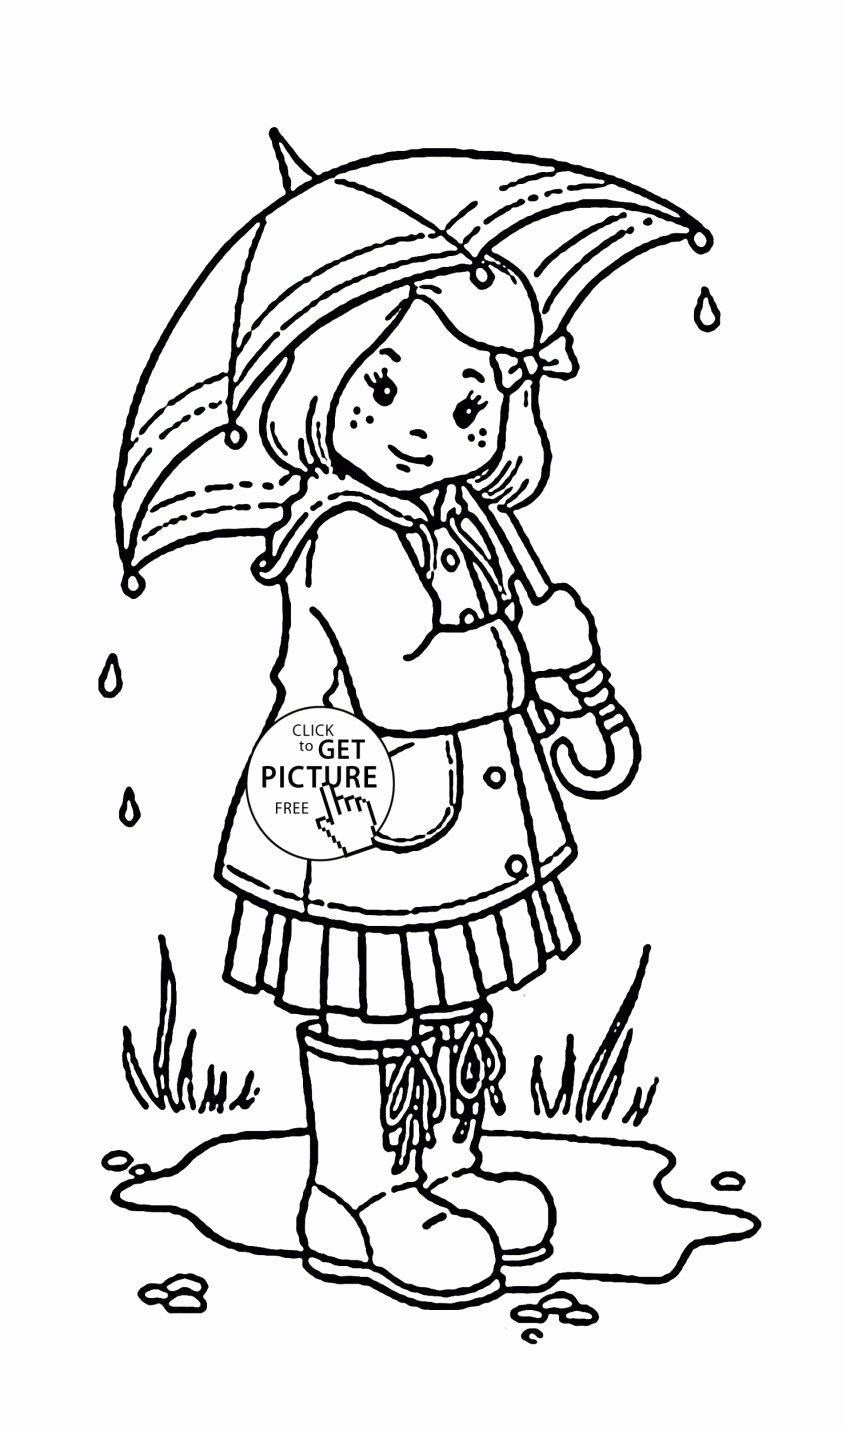 Number 45 Coloring Page Luxury Coloring Pages Girl And Umbrella